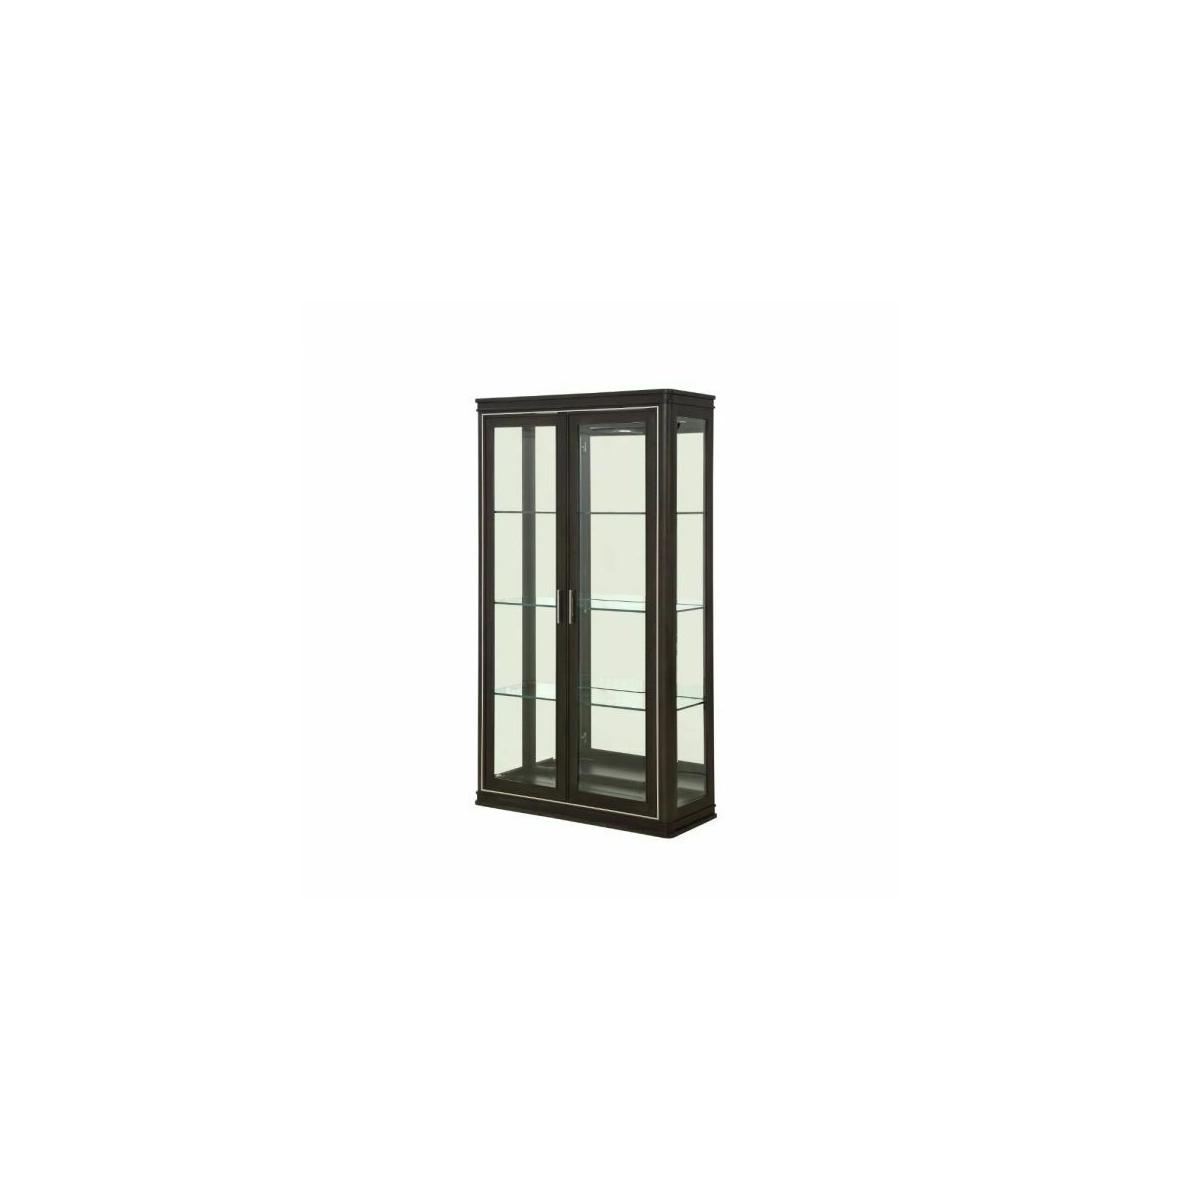 ACME Lorenzo Curio - 68096 - Transitional - Glass, Mirror, Wood (Poplar), Wood Veneer (Cherry), Ply, PB - Espresso